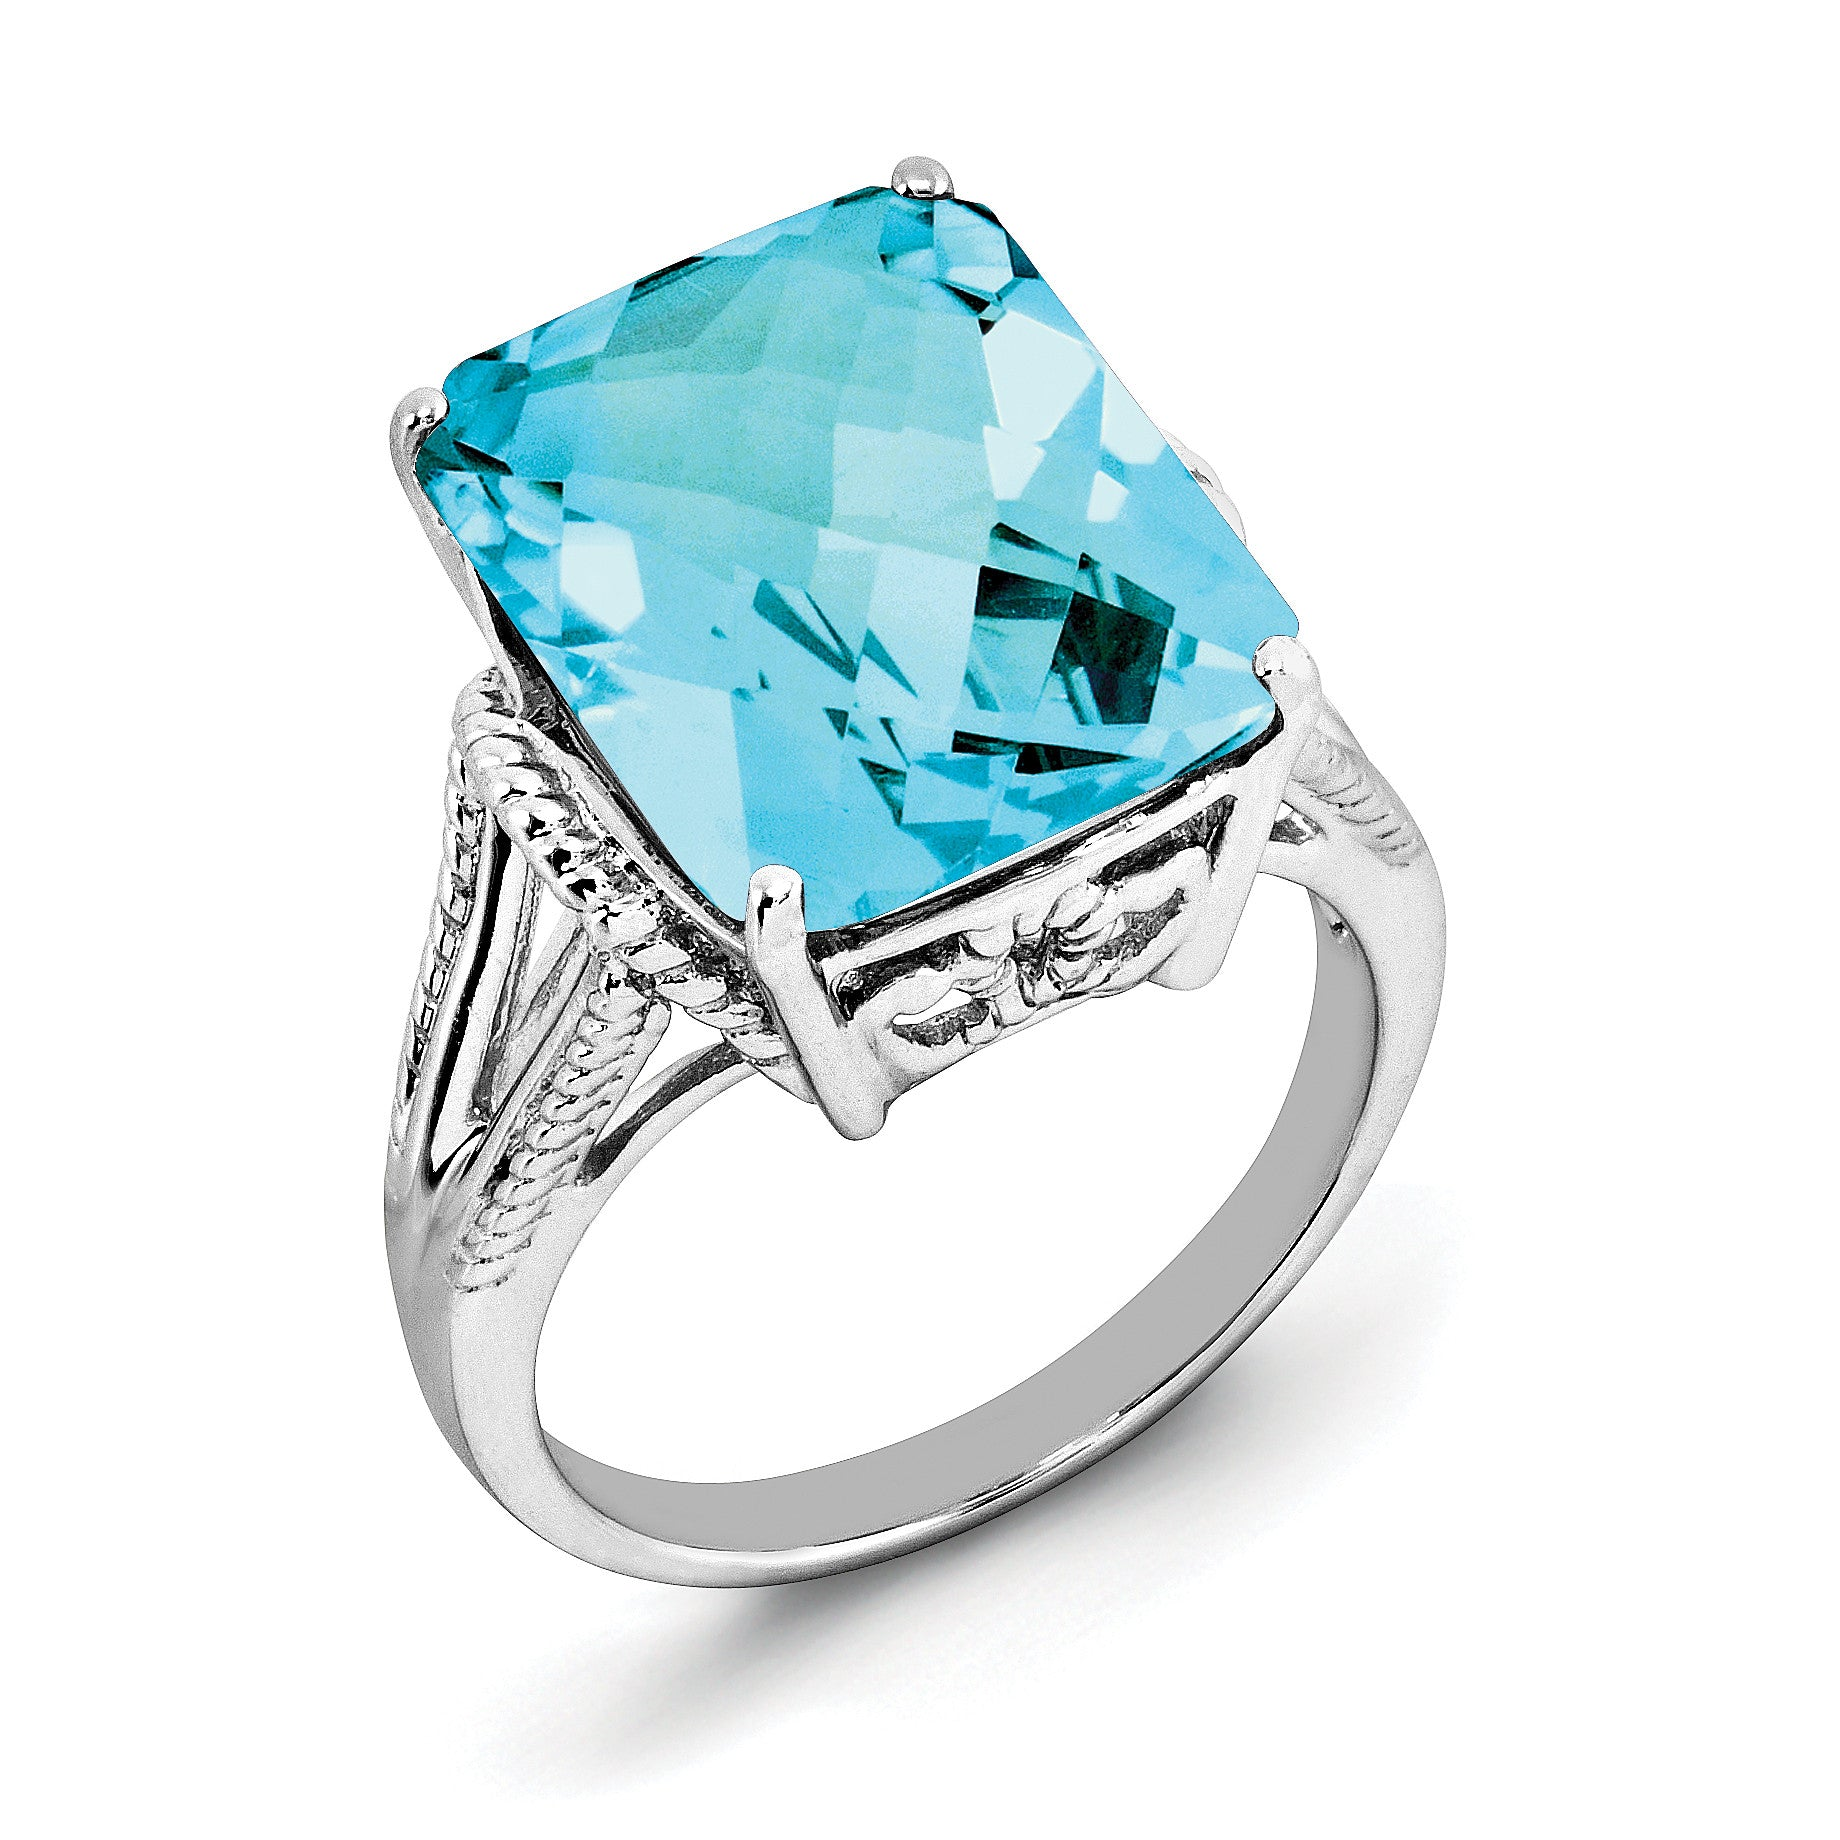 Sterling Silver Rhodium Checker-Cut Blue Topaz Ring QR2953BT - shirin-diamonds